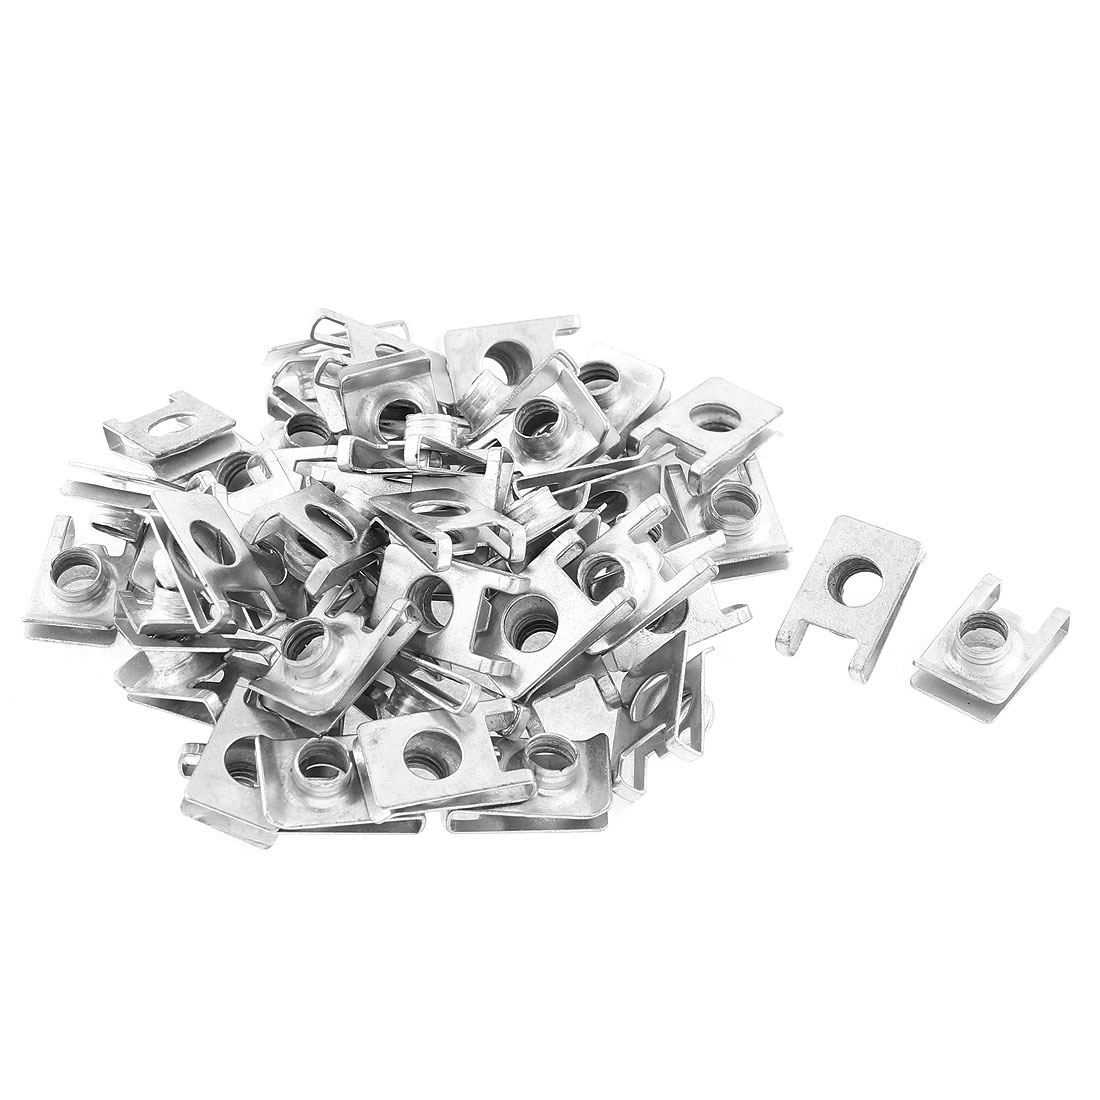 50Pcs Auto Car Dashboard Door Panel Fender Screw U Type Fastener Clips